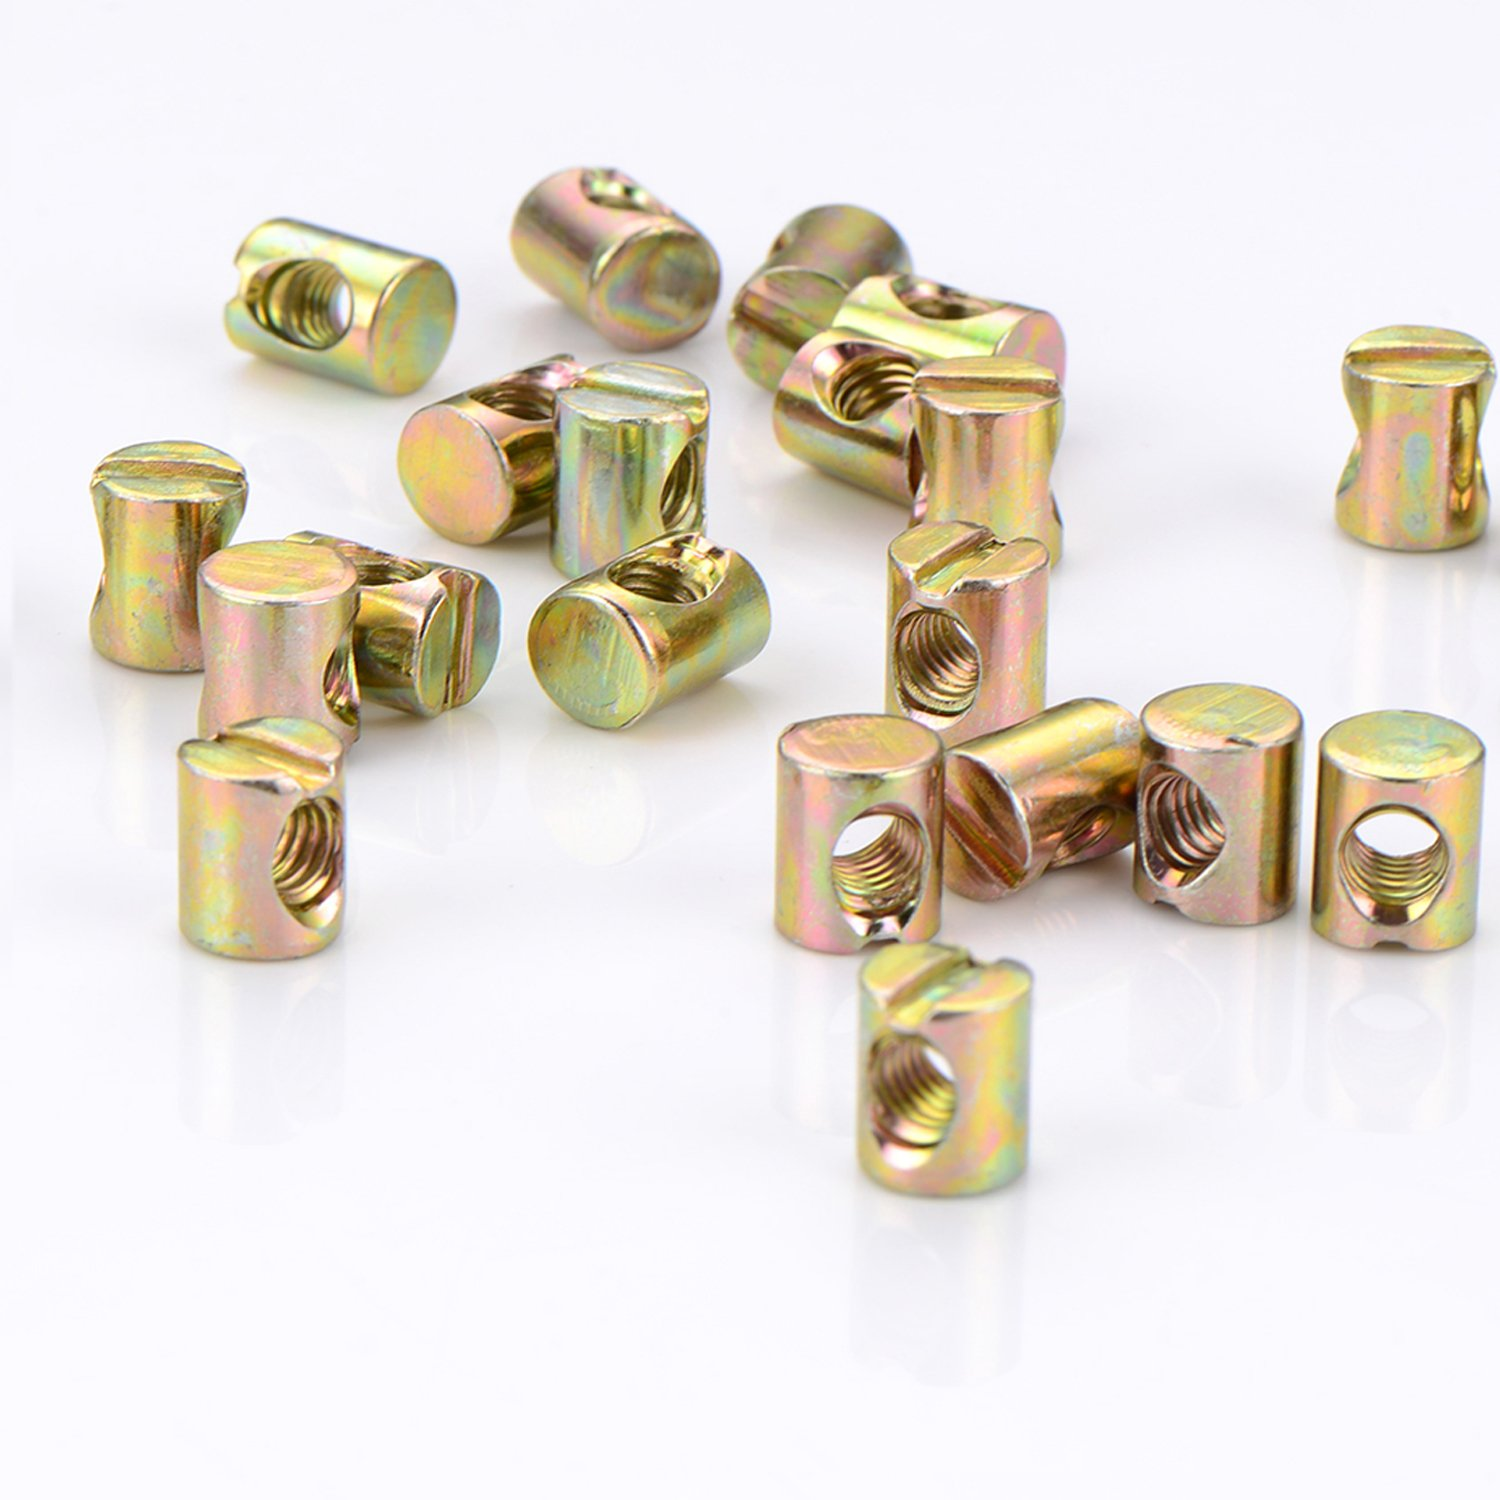 Kenkio 24 Pieces M6 Barrel Nuts Cross Dowels Slotted Nuts for Furniture Beds Crib Chairs